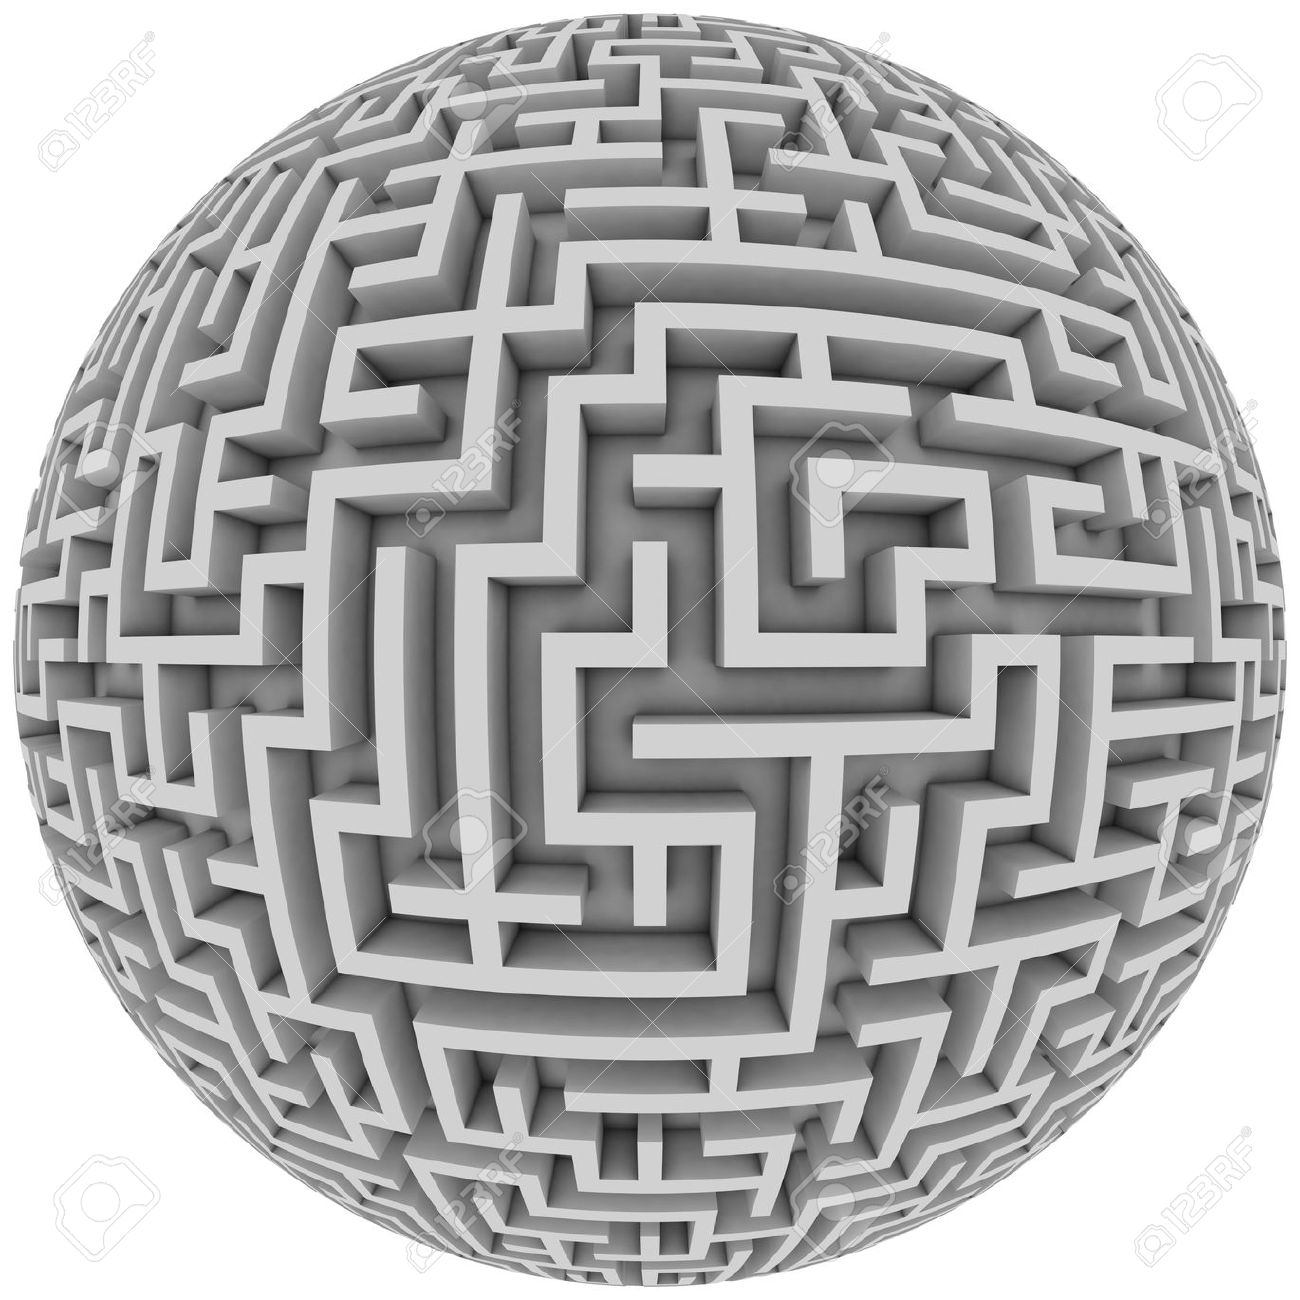 labyrinth planet endless maze with spherical shape 3d illustration